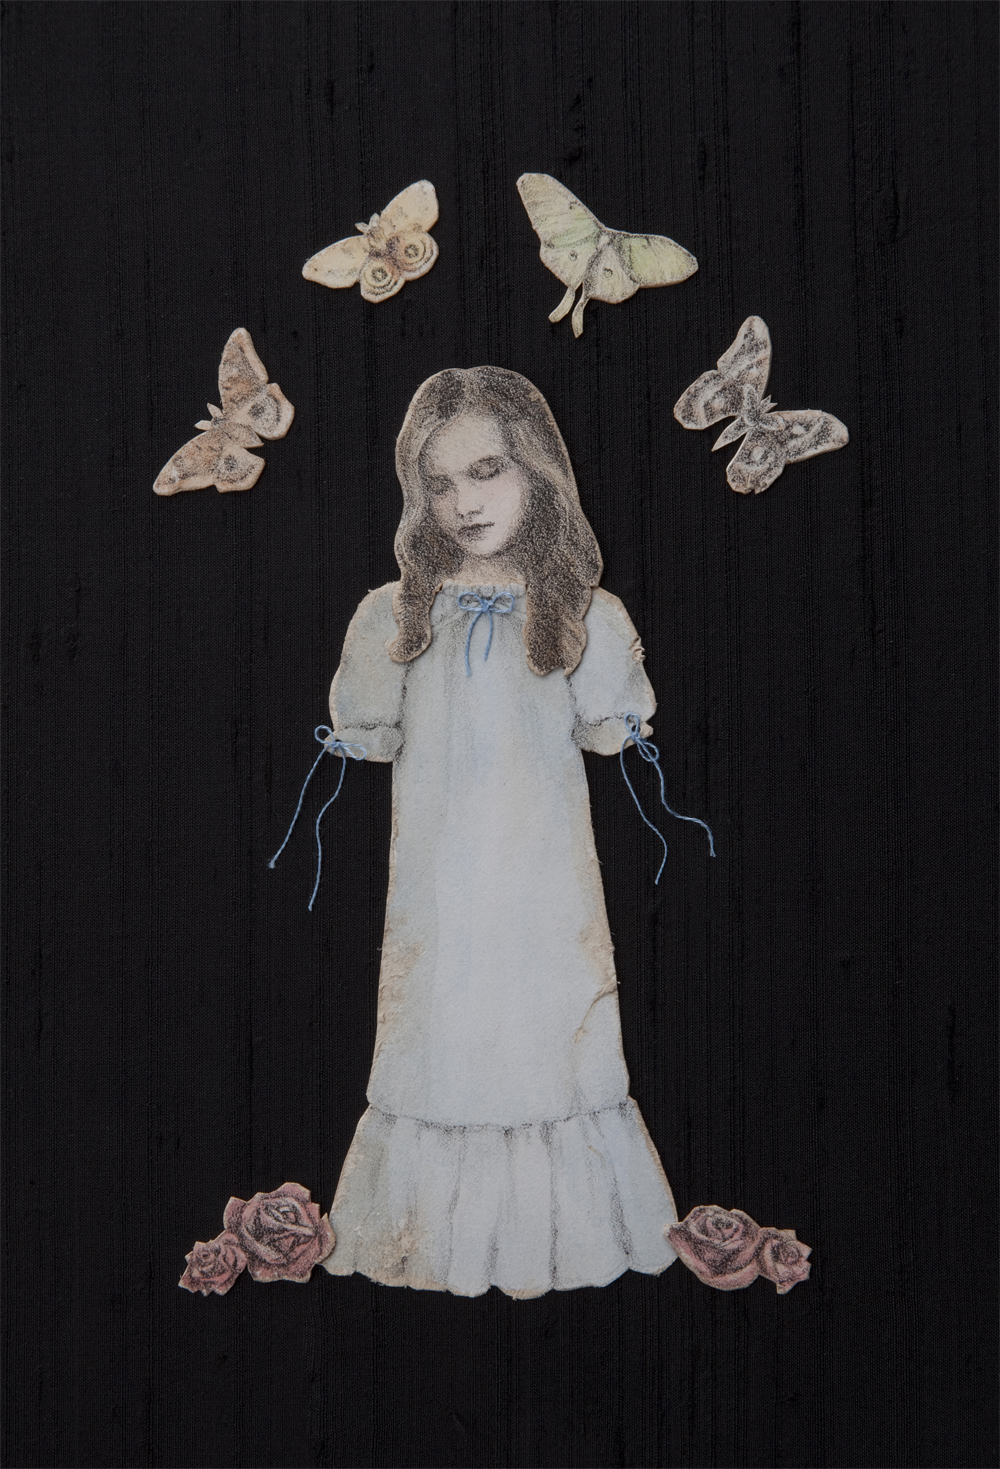 The Somnambulist $630  lithography, bristol paper, acrylic, cotton and silk